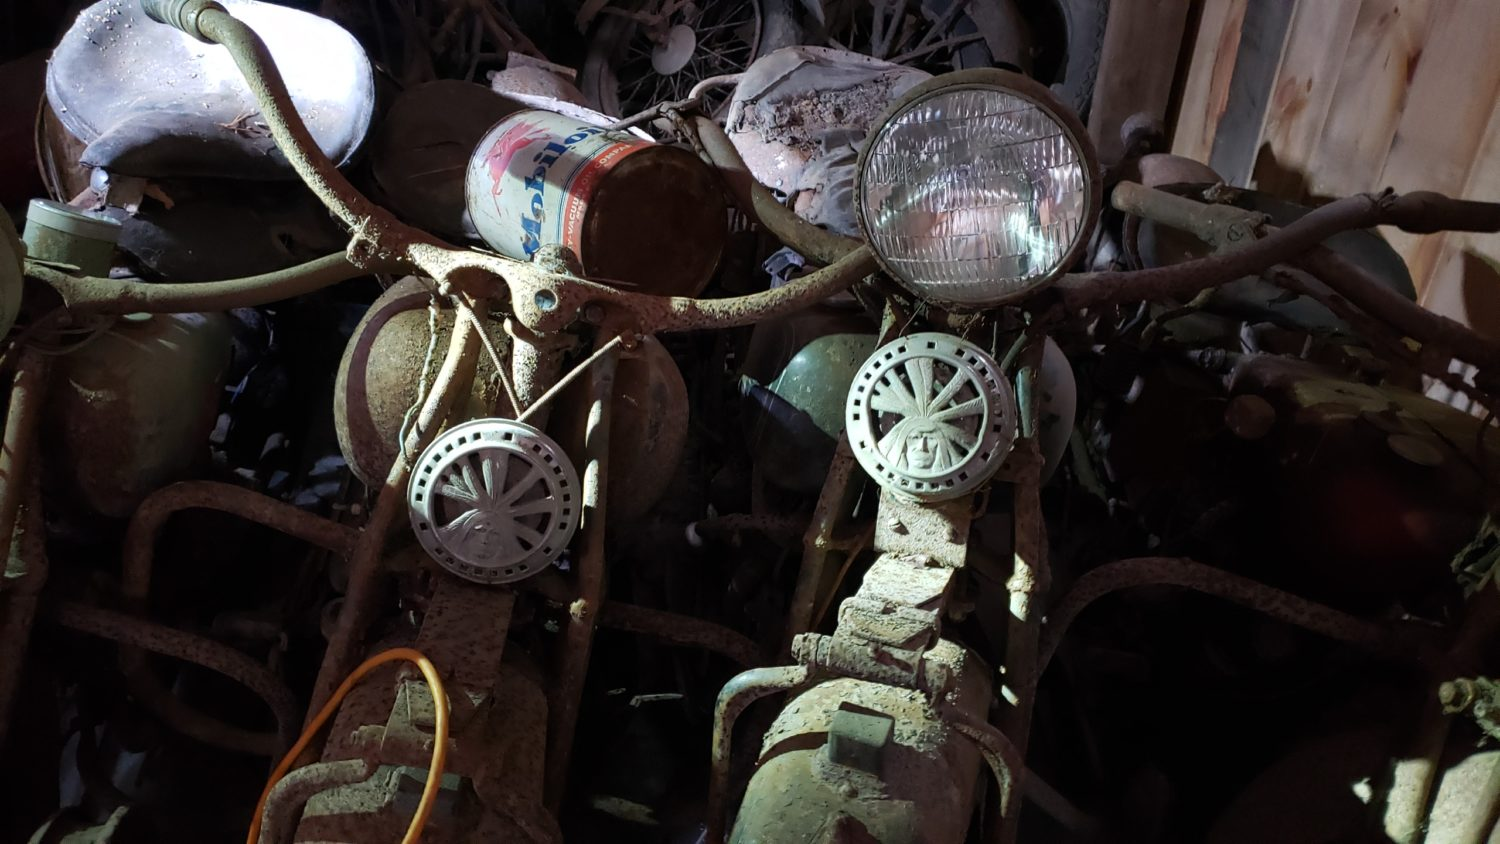 AMAZING Indian Motorcycle Hoard, Race Cars, Collector Car, Collectibles & More!  - image 17